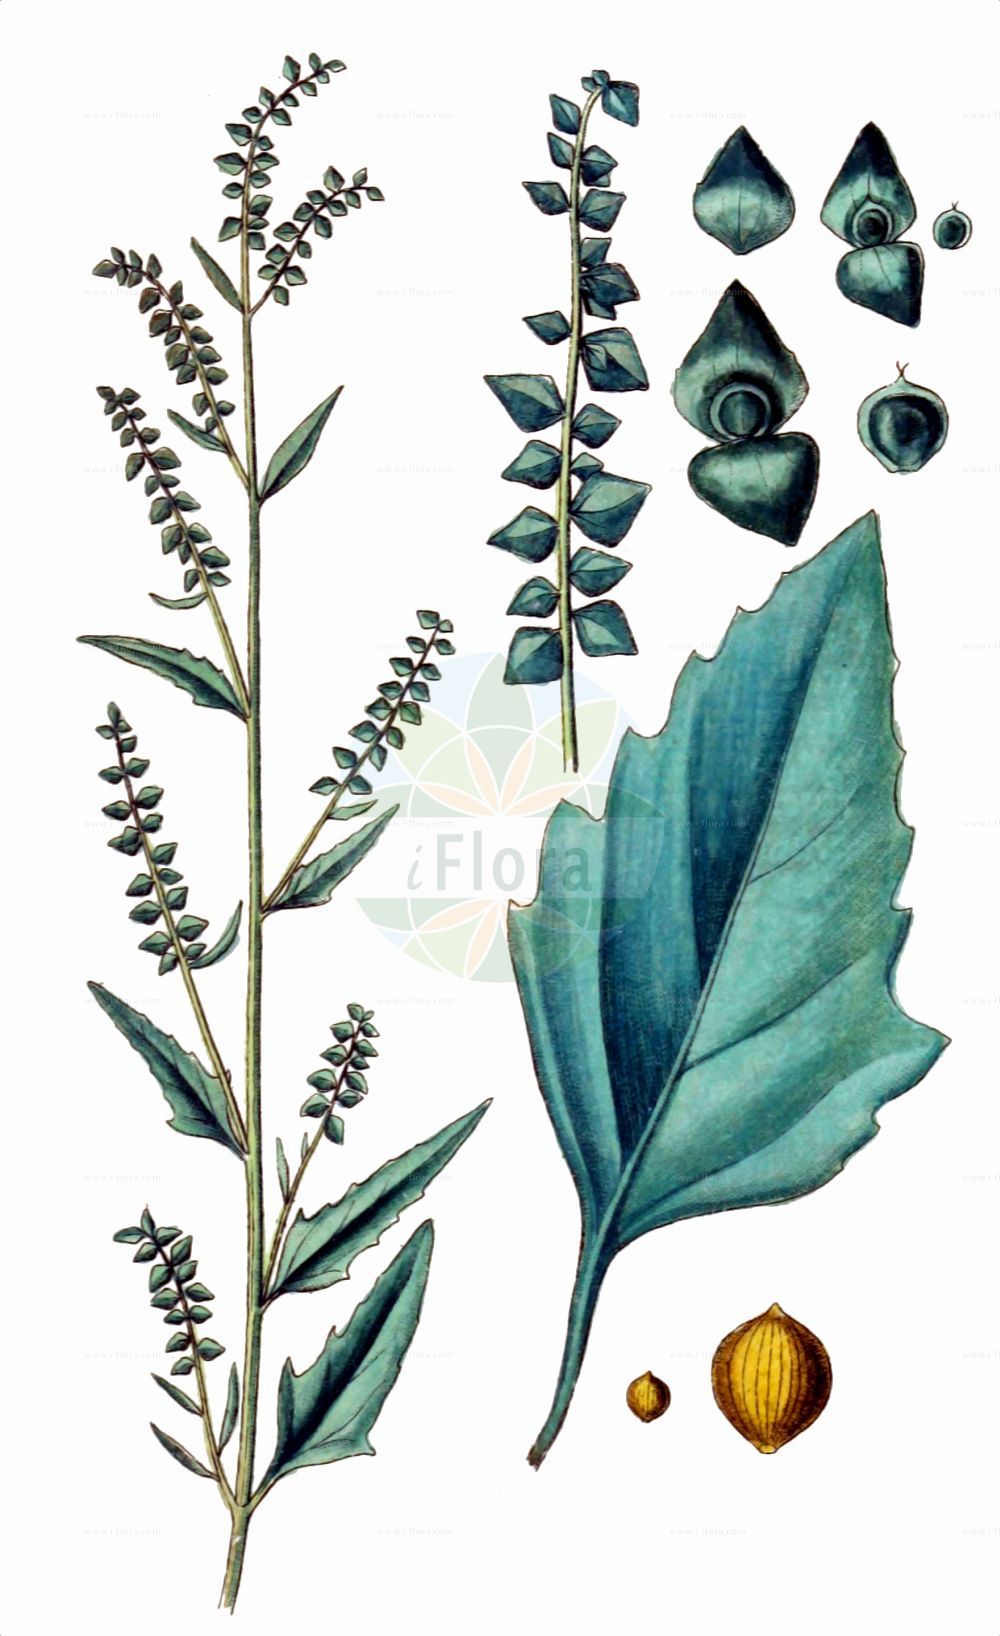 Historische Abbildung von Atriplex oblongifolia (Langblaettrige Melde - Oblongleaf Orache). Das Bild zeigt Blatt, Bluete, Frucht und Same. ---- Historical Drawing of Atriplex oblongifolia (Langblaettrige Melde - Oblongleaf Orache).The image is showing leaf, flower, fruit and seed.(Atriplex oblongifolia,Langblaettrige Melde,Oblongleaf Orache,Atriplex oblongifolia,Langblaettrige Melde,Oblongleaf Orache,Atriplex,Melde,Saltbush,Amaranthaceae,Fuchsschwanzgewaechse,Pigweed family,Blatt,Bluete,Frucht,Same,leaf,flower,fruit,seed,Sturm (1796f))